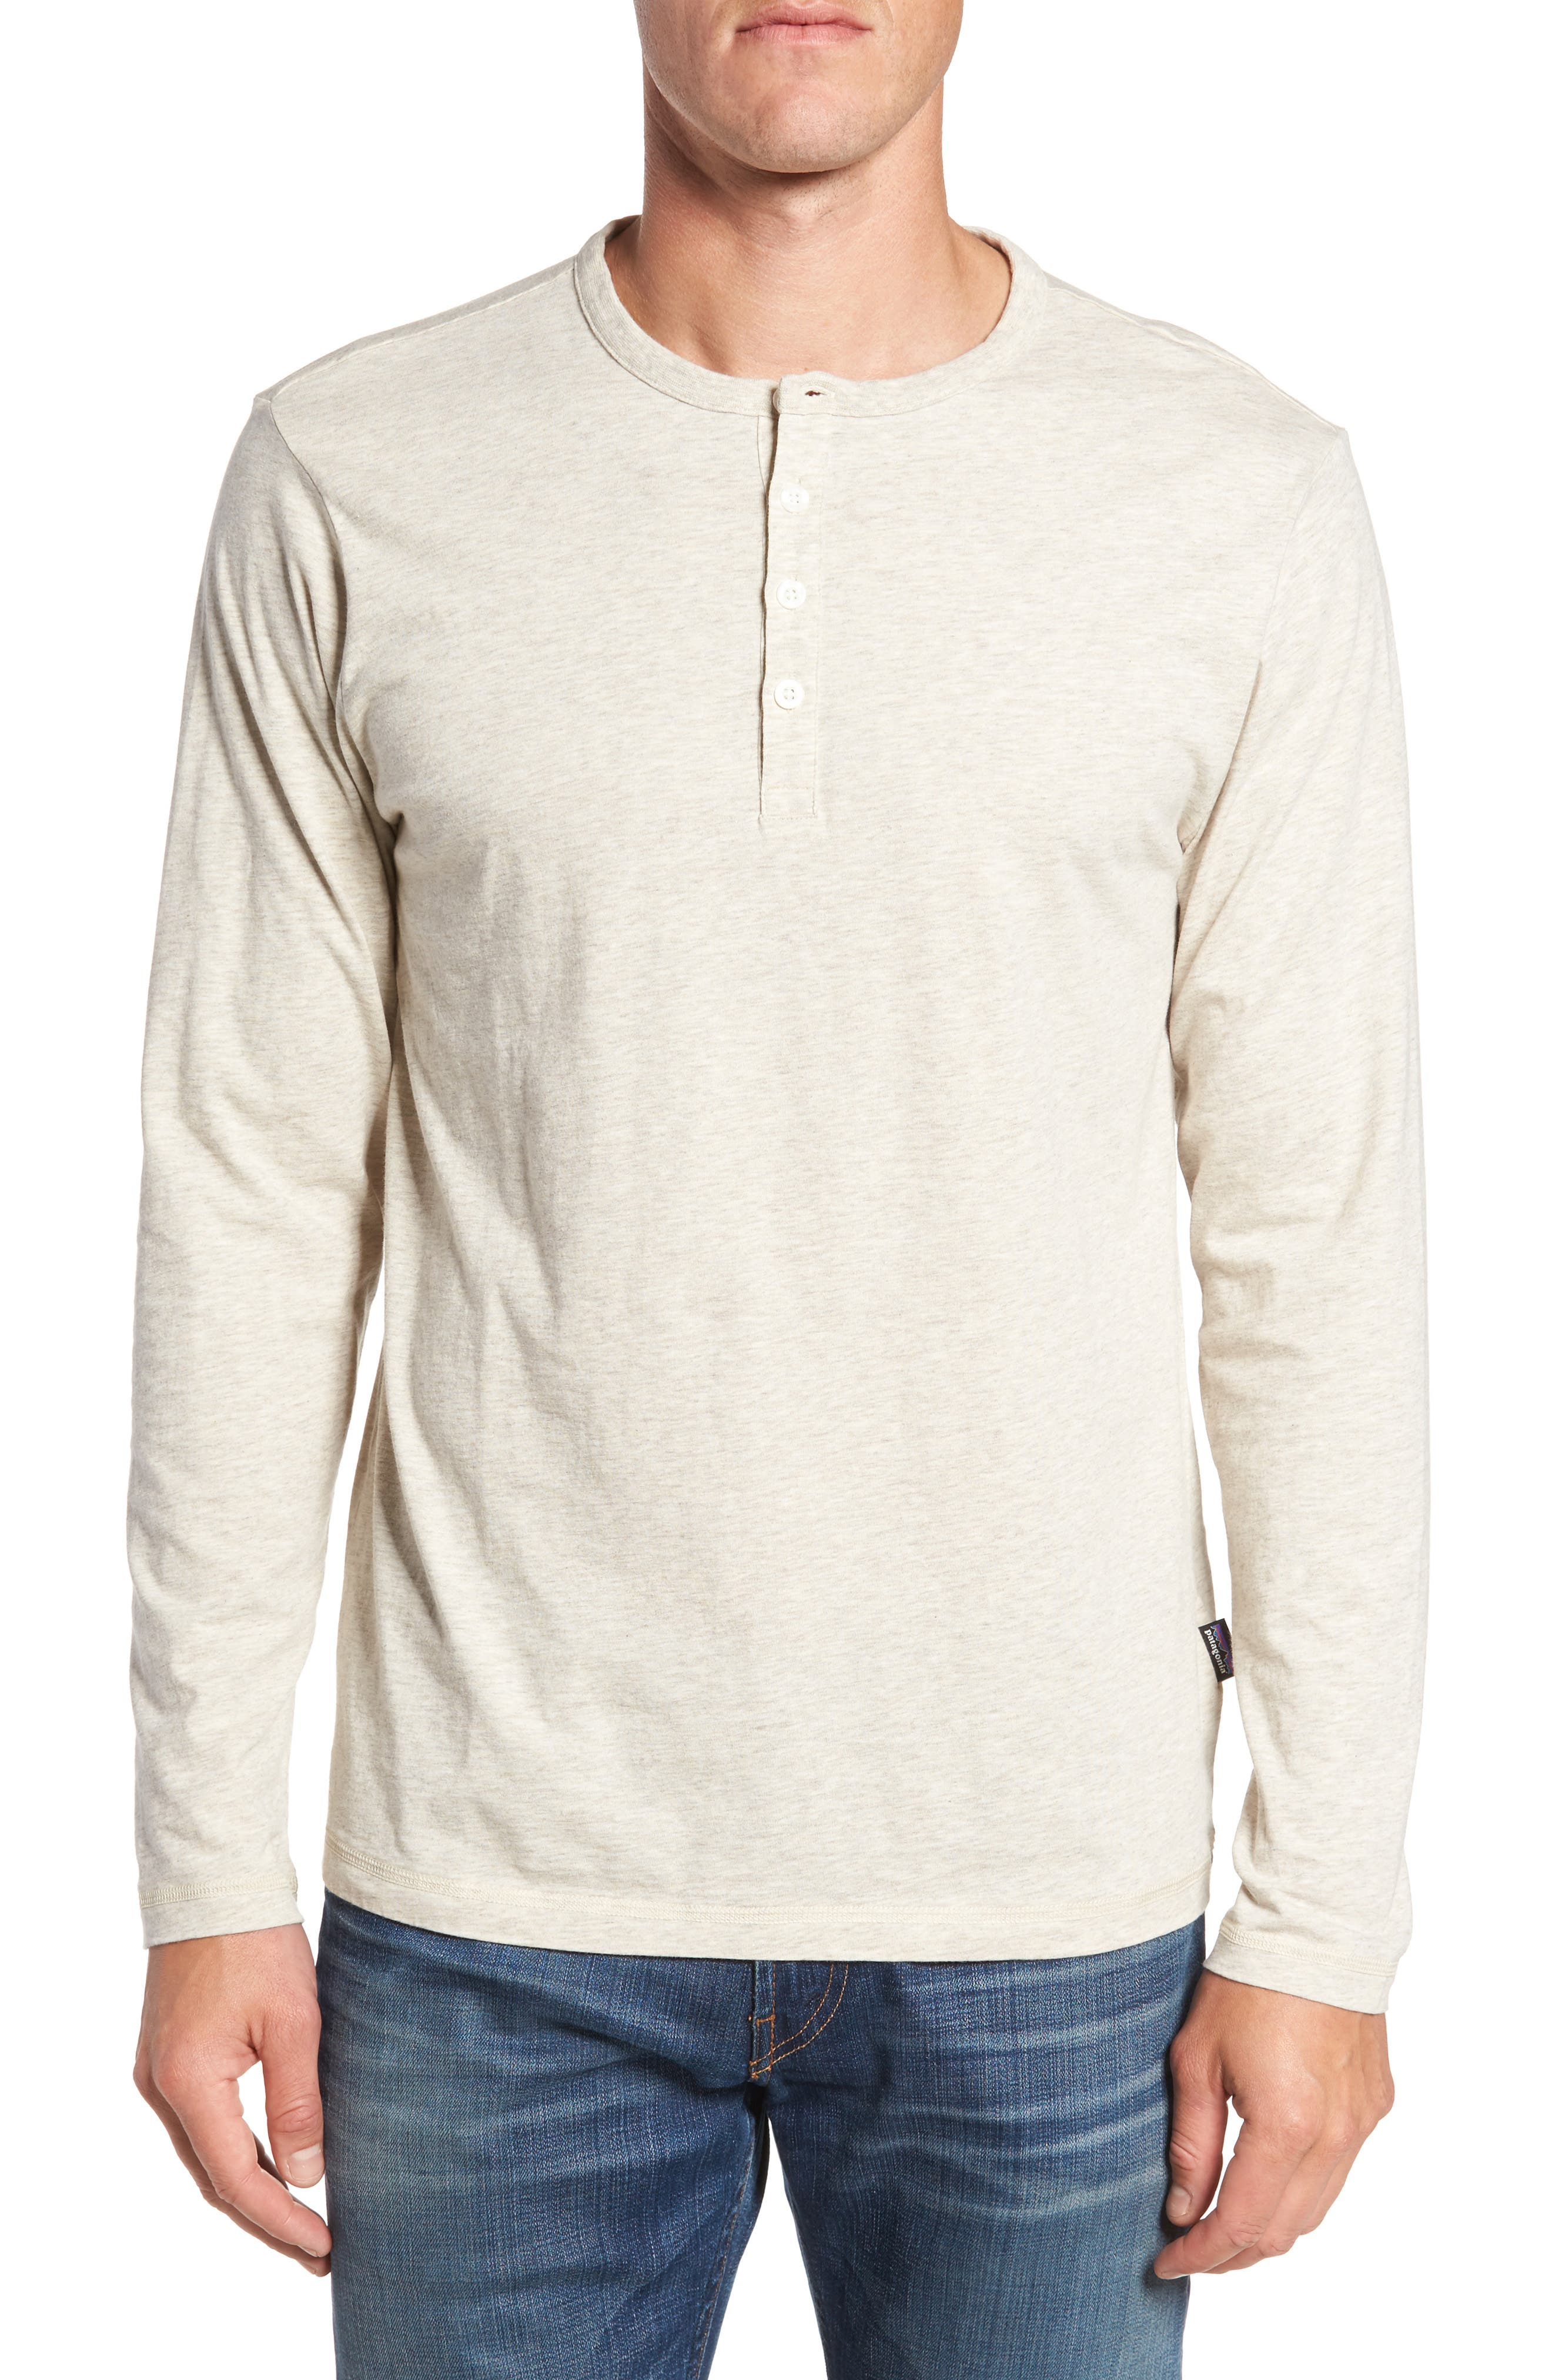 Alternate Image 1 Selected - Patagonia 'Daily' Long Sleeve Organic Cotton Henley